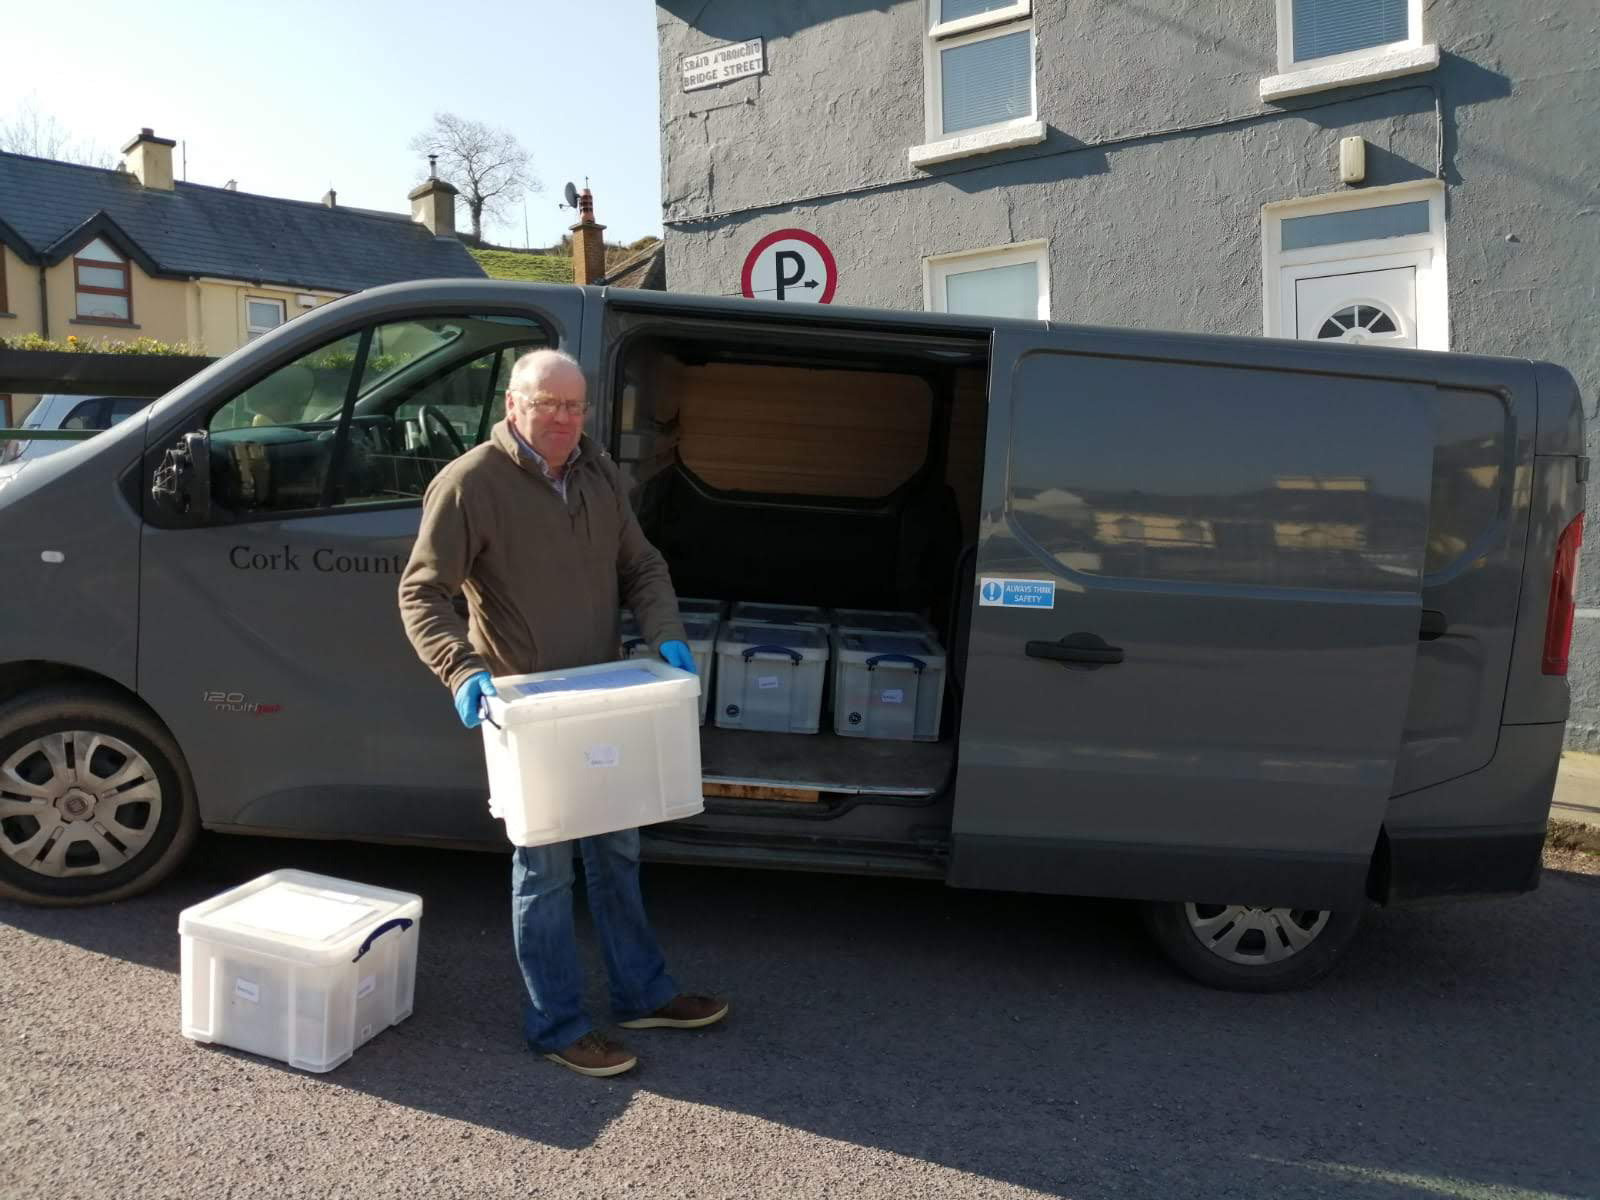 Doorstep Deliveries Courtesy of Cork County Council's Library Service